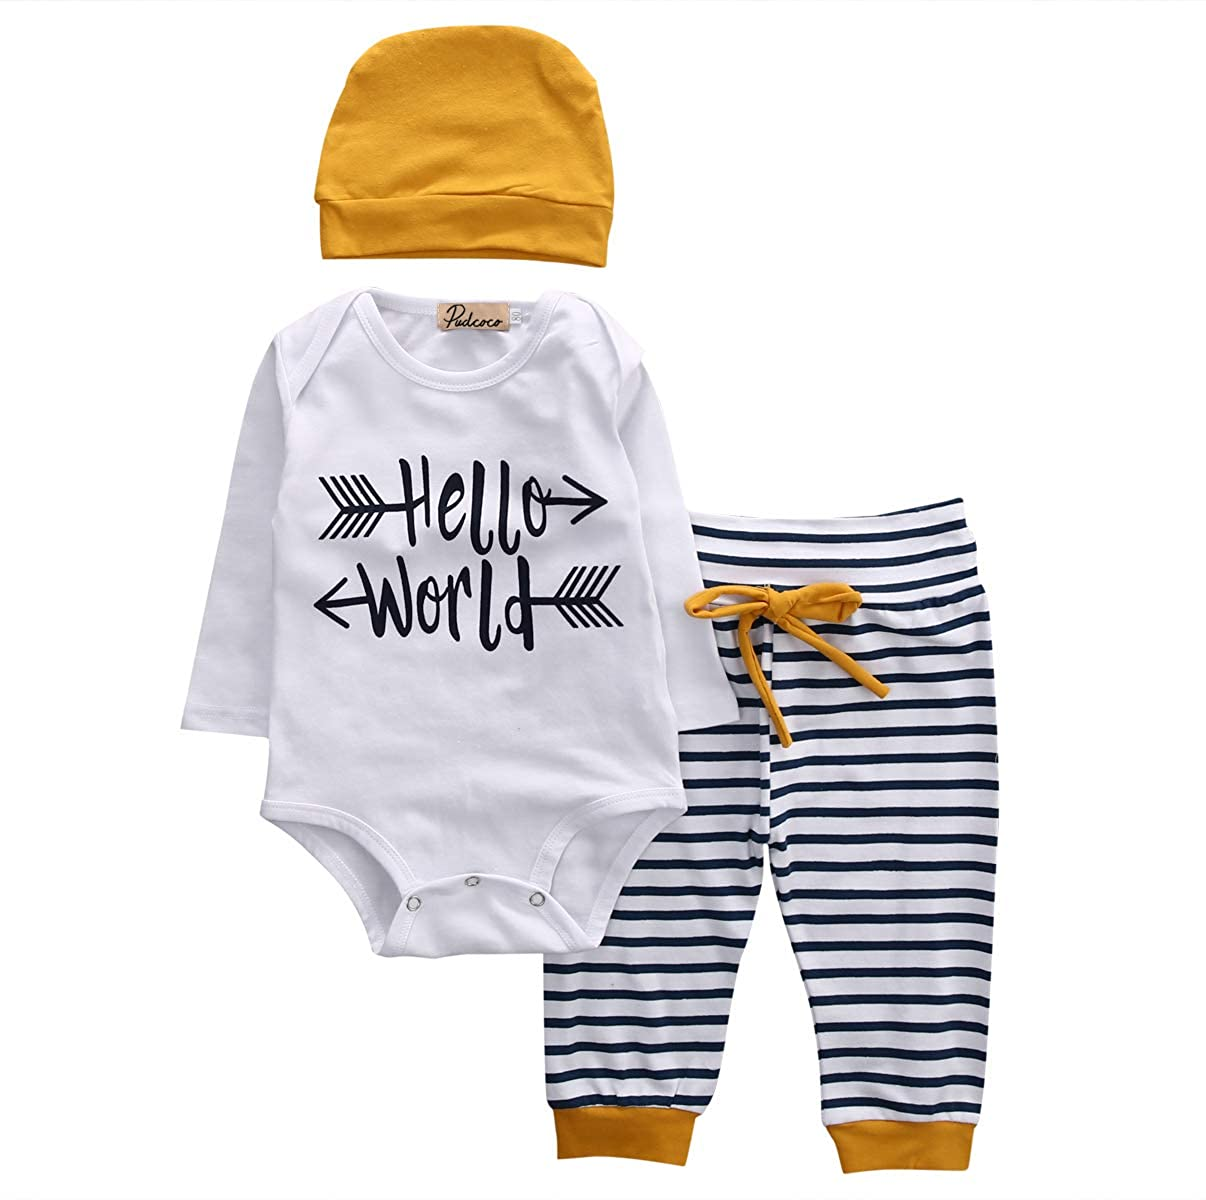 3Pcs Infant Newborn Baby boy Girls Hello World Romper Tops+Pants Clothes Outfit Sets MA&BABY